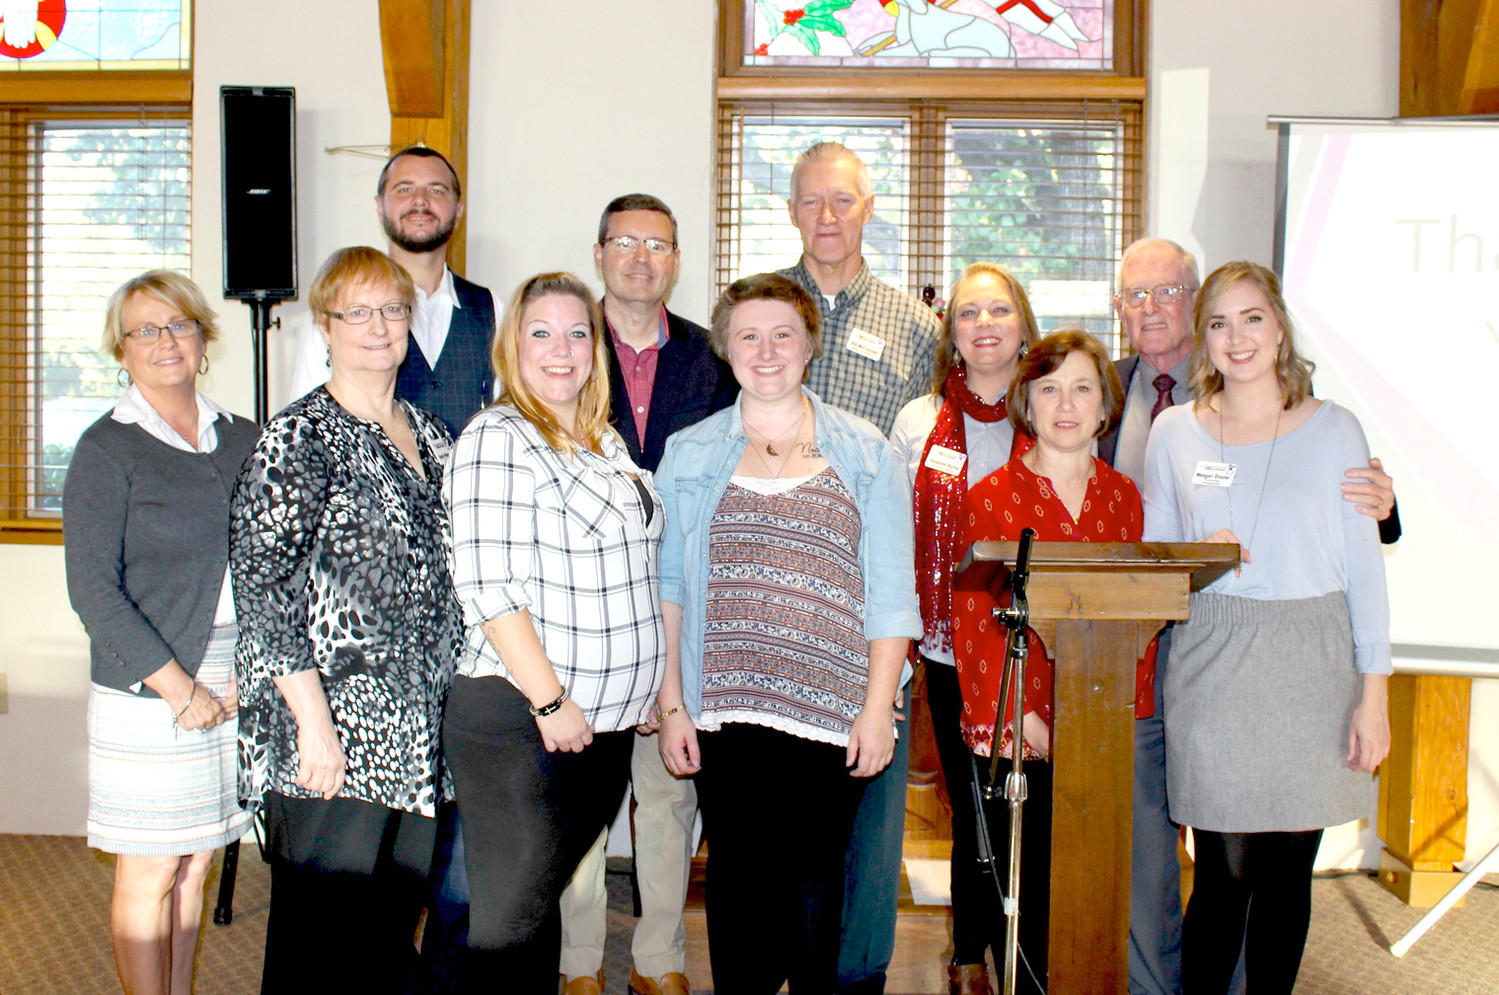 FOUNDATION HOUSE MINISTRIES staff, board members and supporters gather for a photo with two of the maternity home's current residents after its latest fundraising breakfast. They are Kayla Jones, third from left in the front row, and Laura Ramsey, to her right.